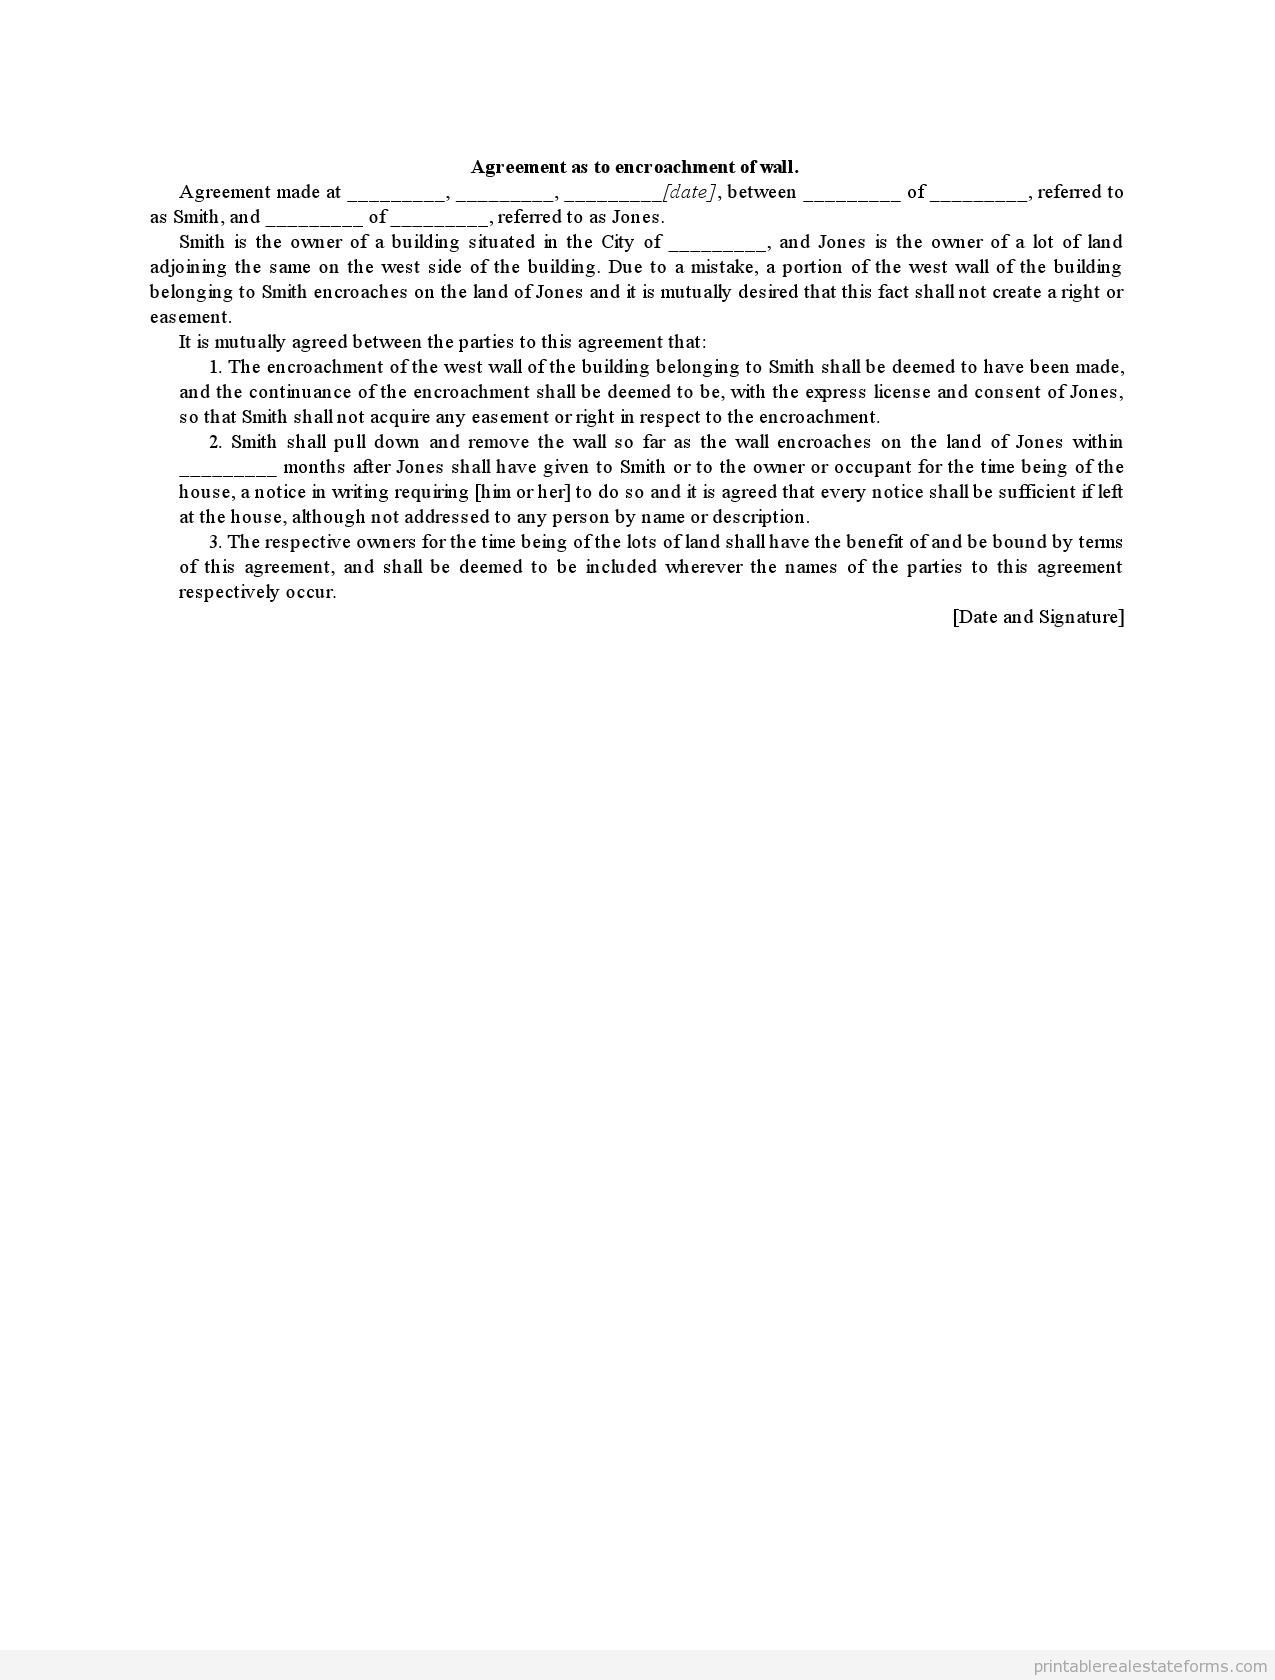 Sample Printable Agreement As To Encroachment Of Wall Form Sample